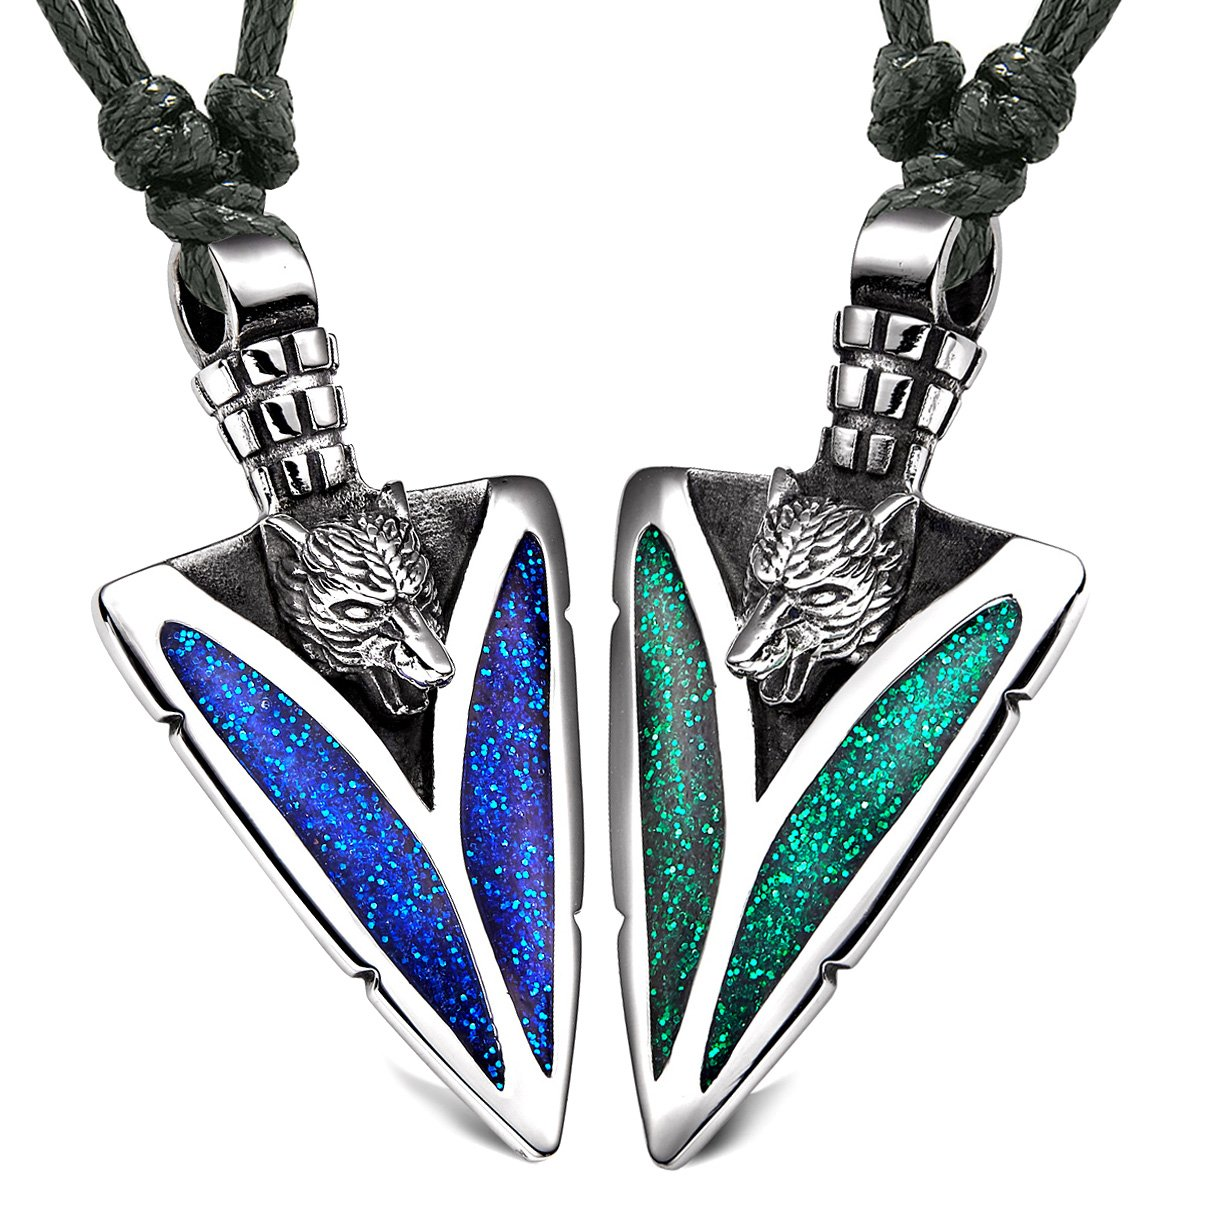 Arrowhead Howling Wolf Love Couples or BFF Set Amulets Sparkling Royal Blue Green Adjustable Necklaces